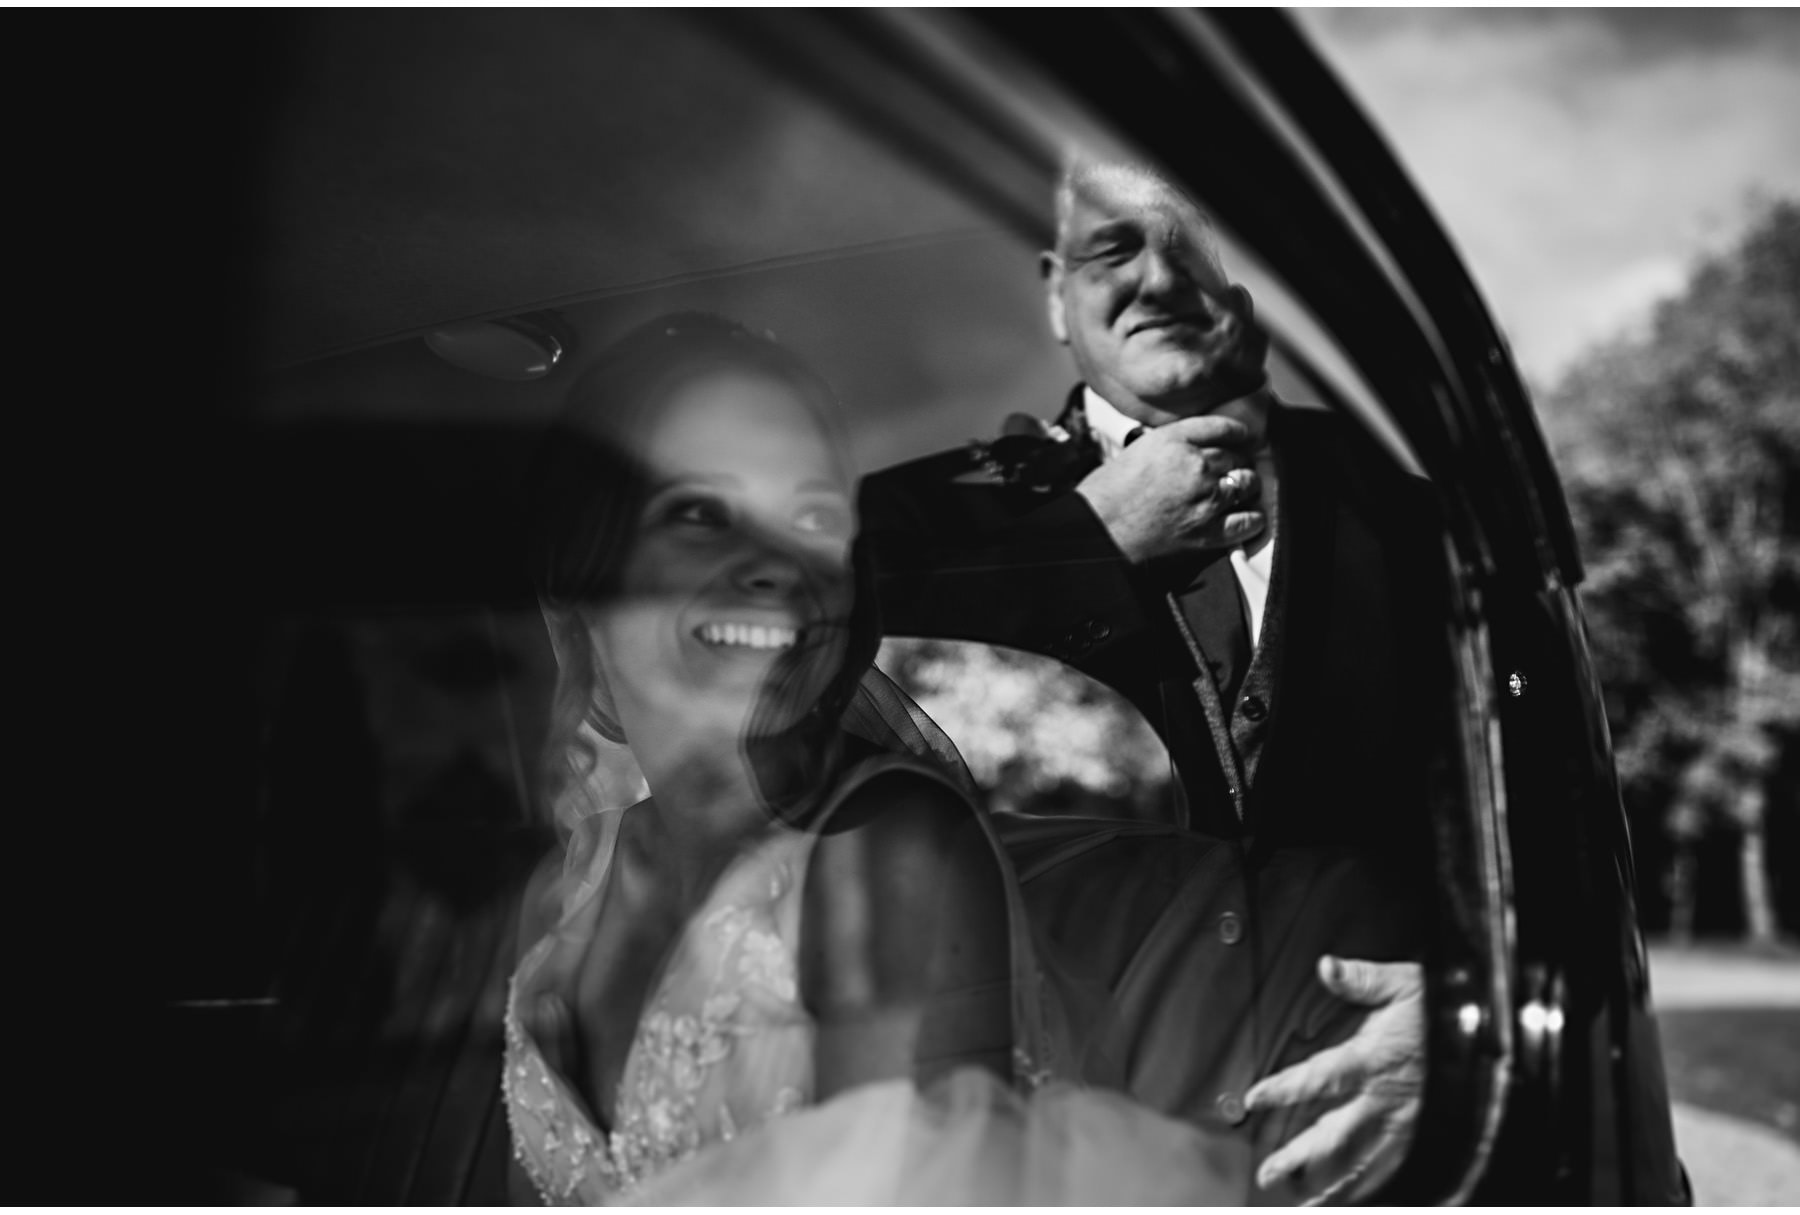 the bride in the car, dad's reflection in the window